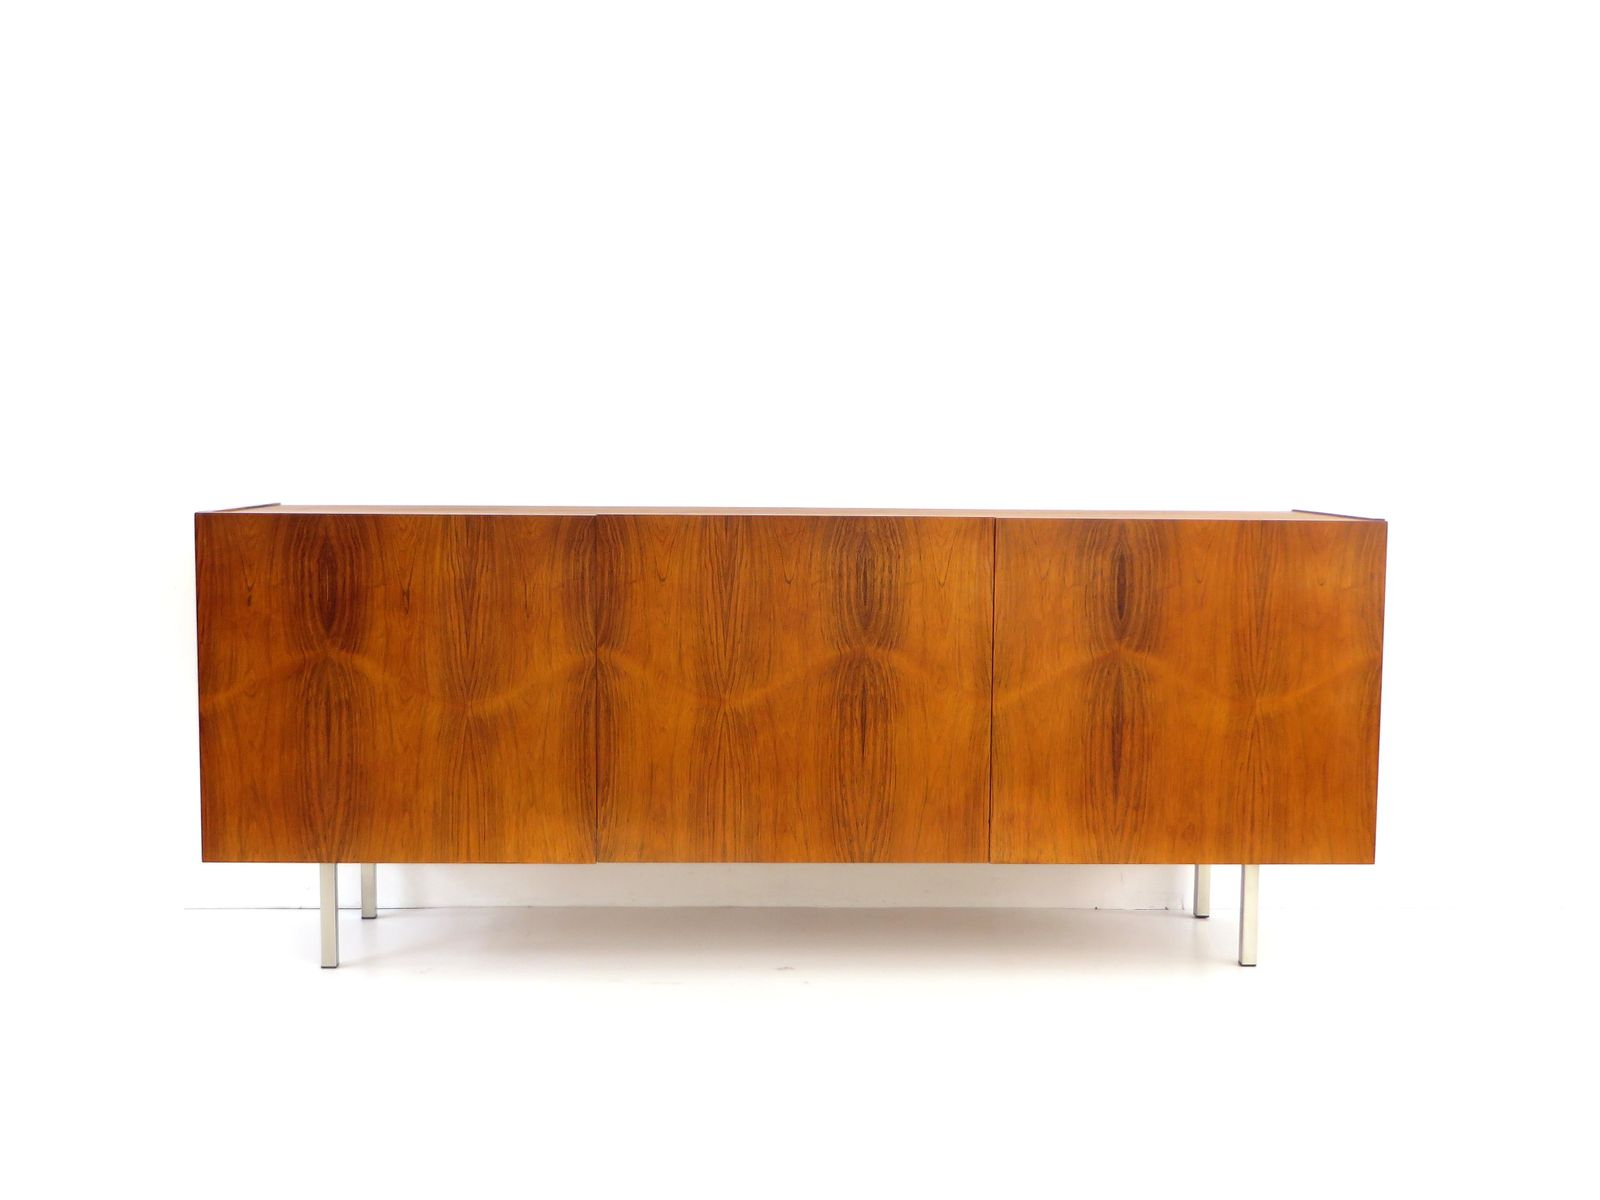 Mid century dutch sideboard 1960s for sale at pamono - Sideboard mid century ...